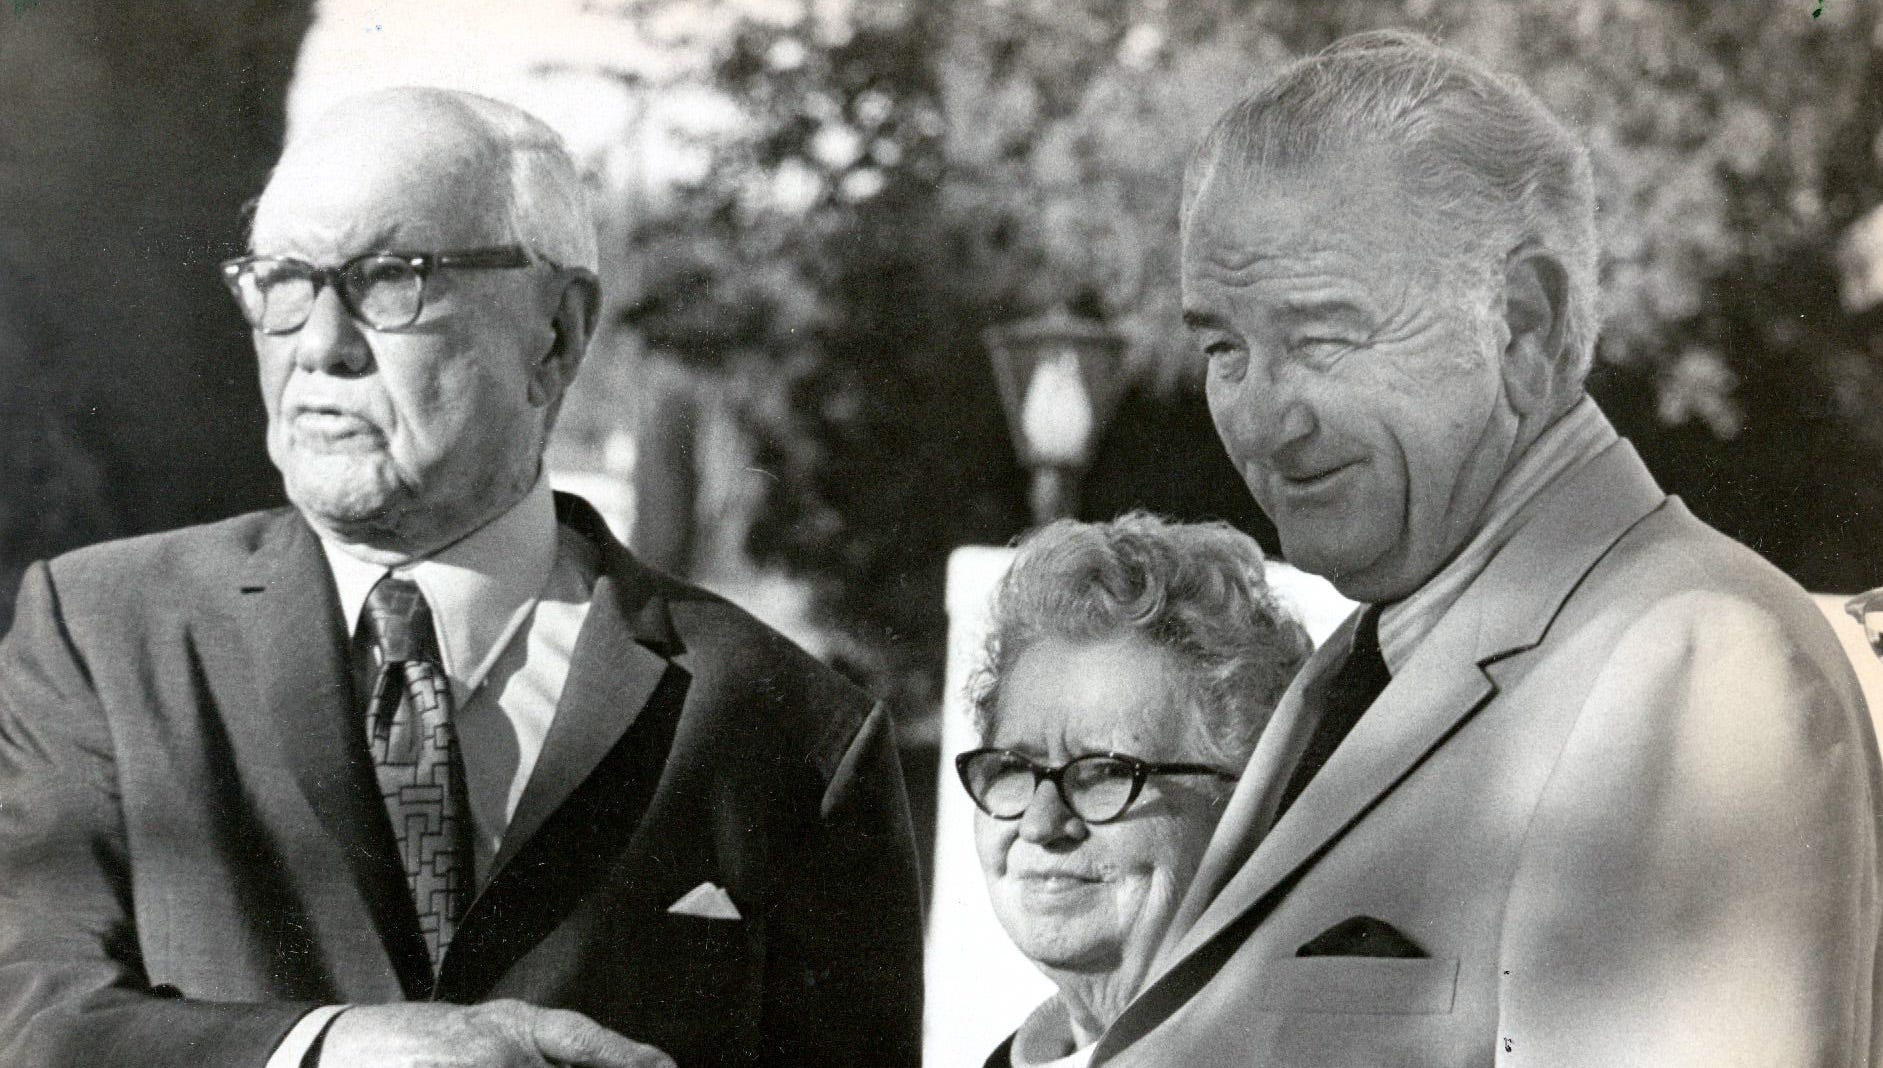 """It was a birthday visit,"" said retired U.S. District Judge R.E. Thomason, left, as he and his wife chatted with former President Lyndon B. Johnson on May 26, 1971, outside the El Pasoans' home. Johnson visited Thomason, an old friend, as a surprise for his 92nd birthday."